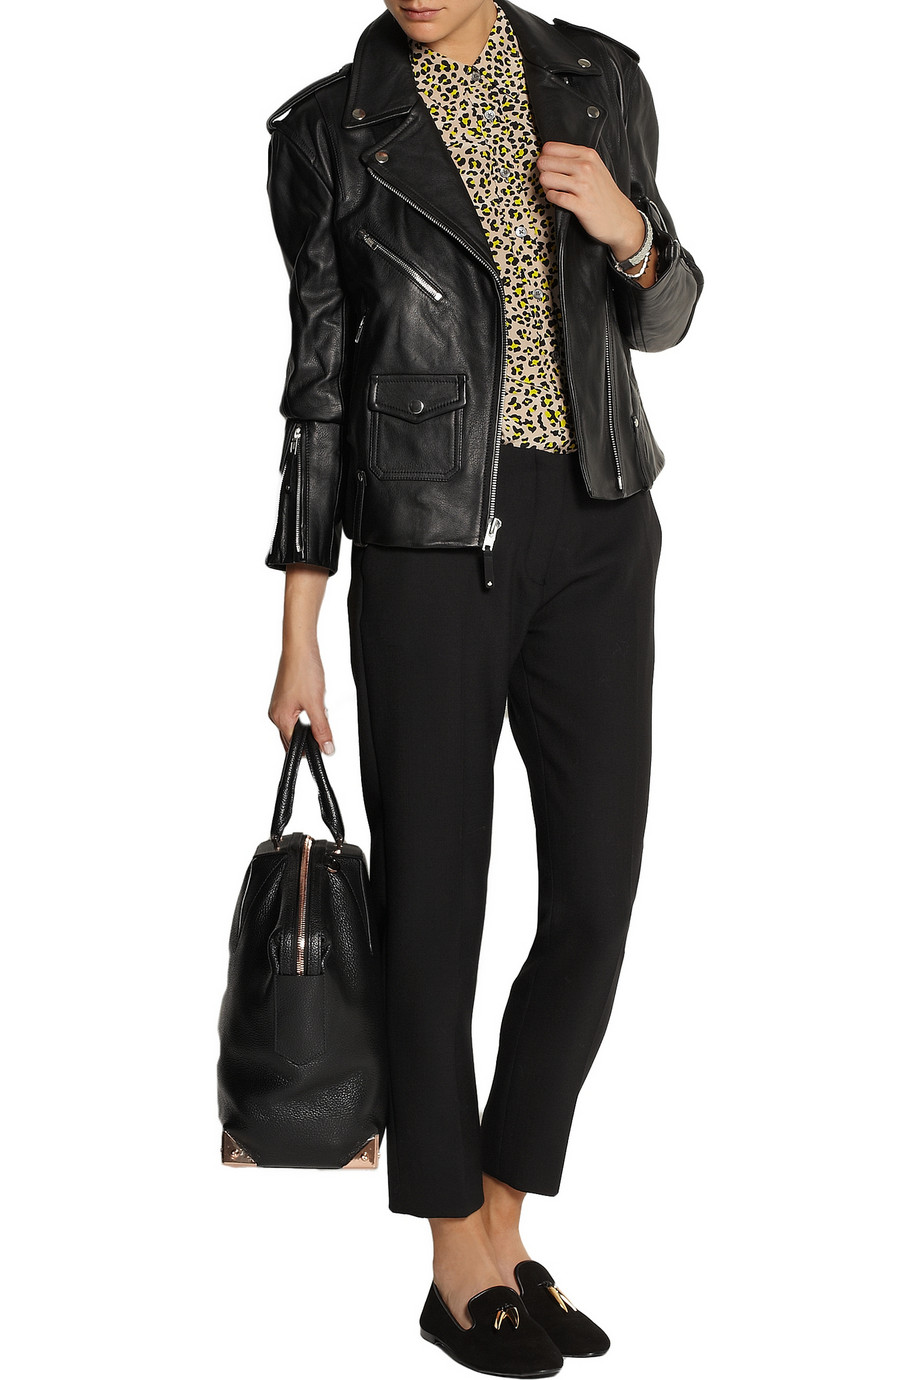 Theory Dalayan leather biker jacket – 55% at THE OUTNET.COM